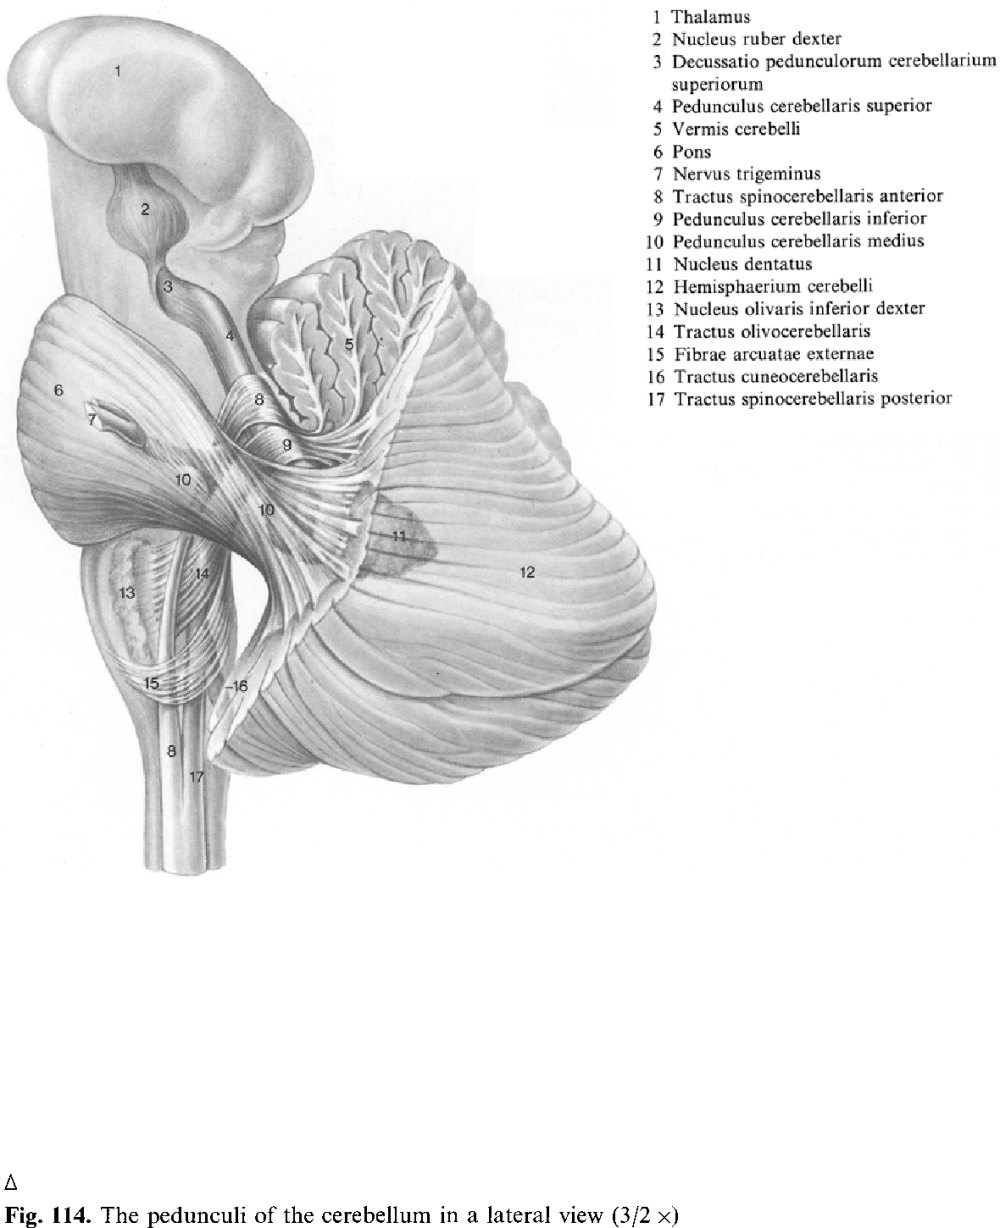 medium resolution of fig 114 the pedunculi of the cerebellum in a lateral view 3